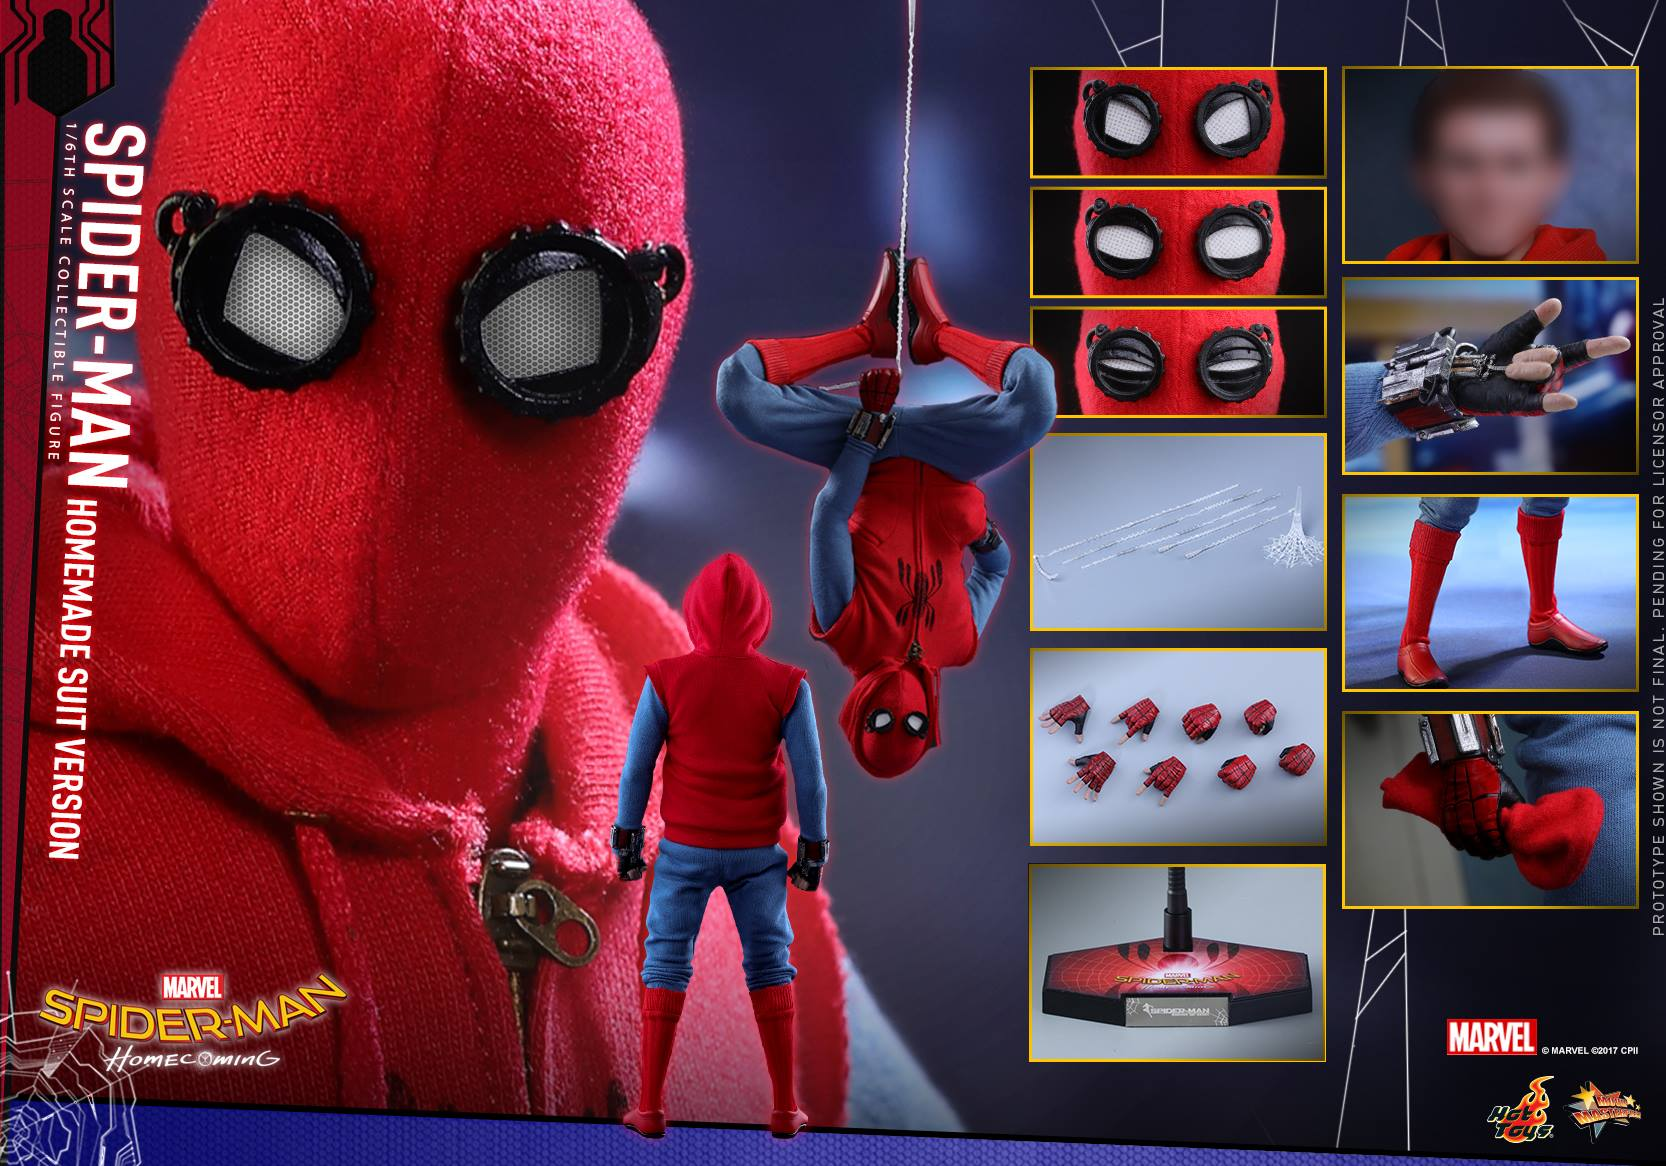 Spider-Man-Homecoming-Homemade-Suit-Version-by-Hot-Toys-8